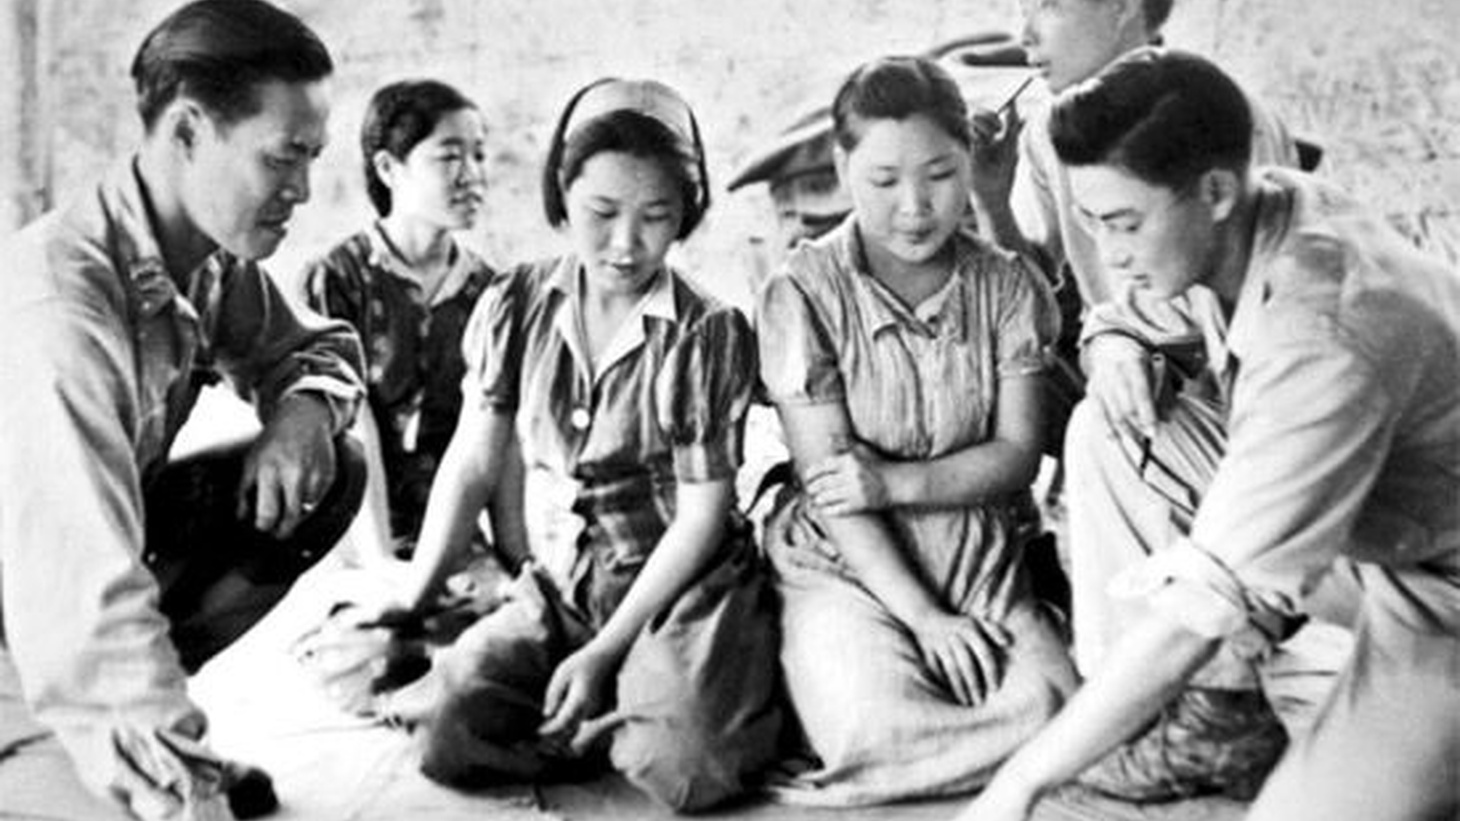 After seventy years, there is finally an apology and a settlement for the women forced to work in brothels for the Japanese Imperial Army during WW II.